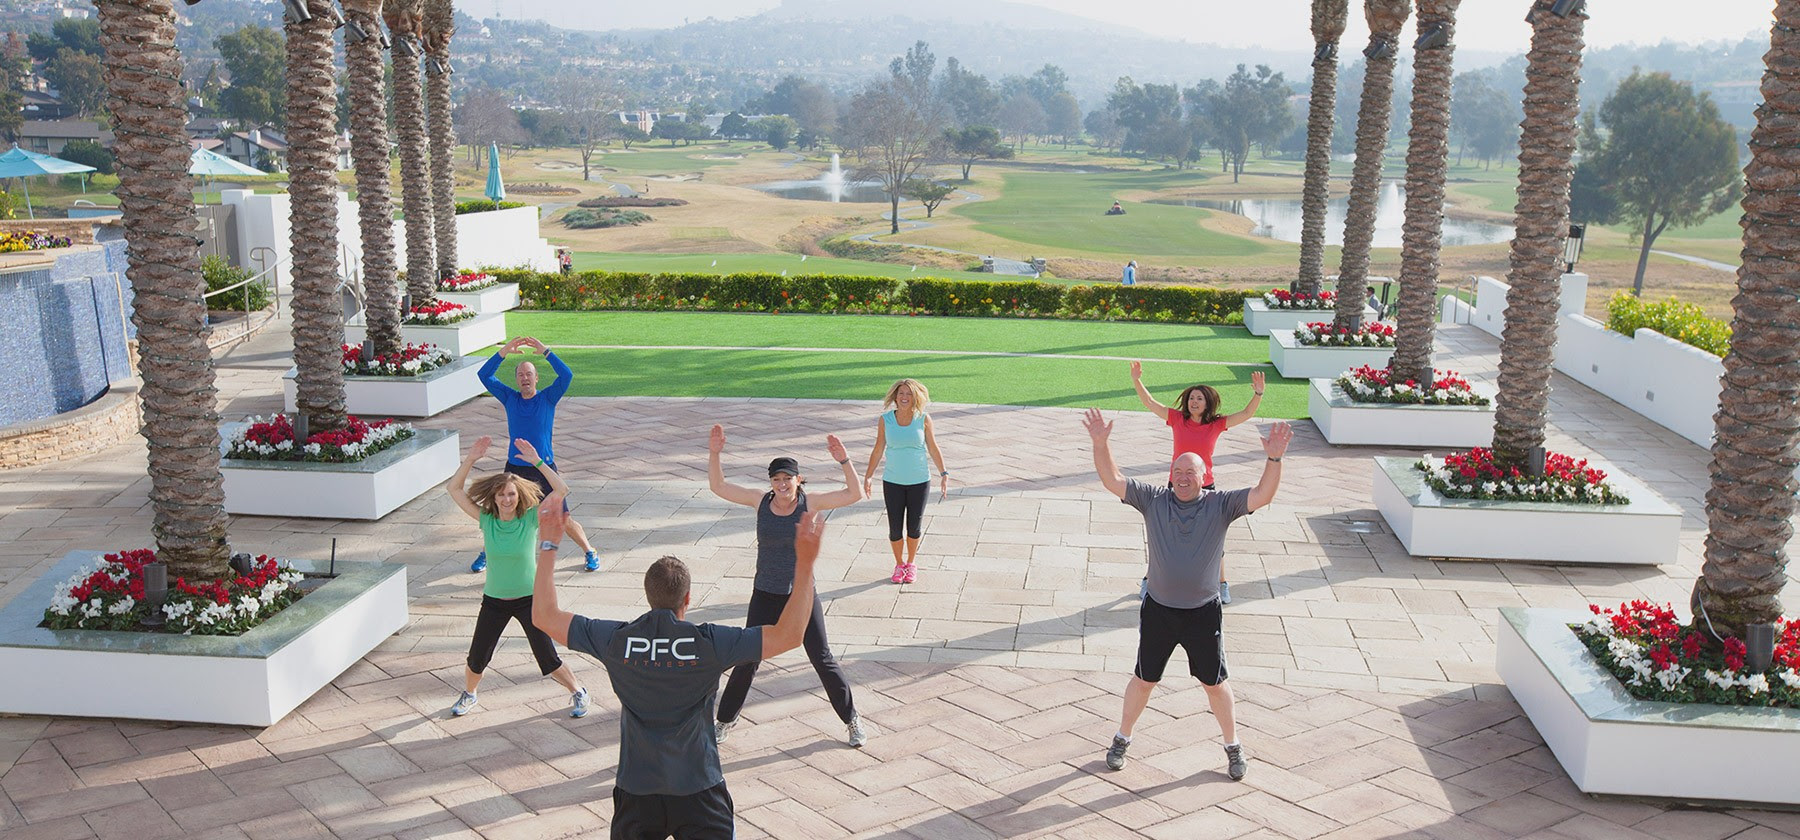 Weight Loss Retreat and Fitness Spa in San Diego, CA | PFC